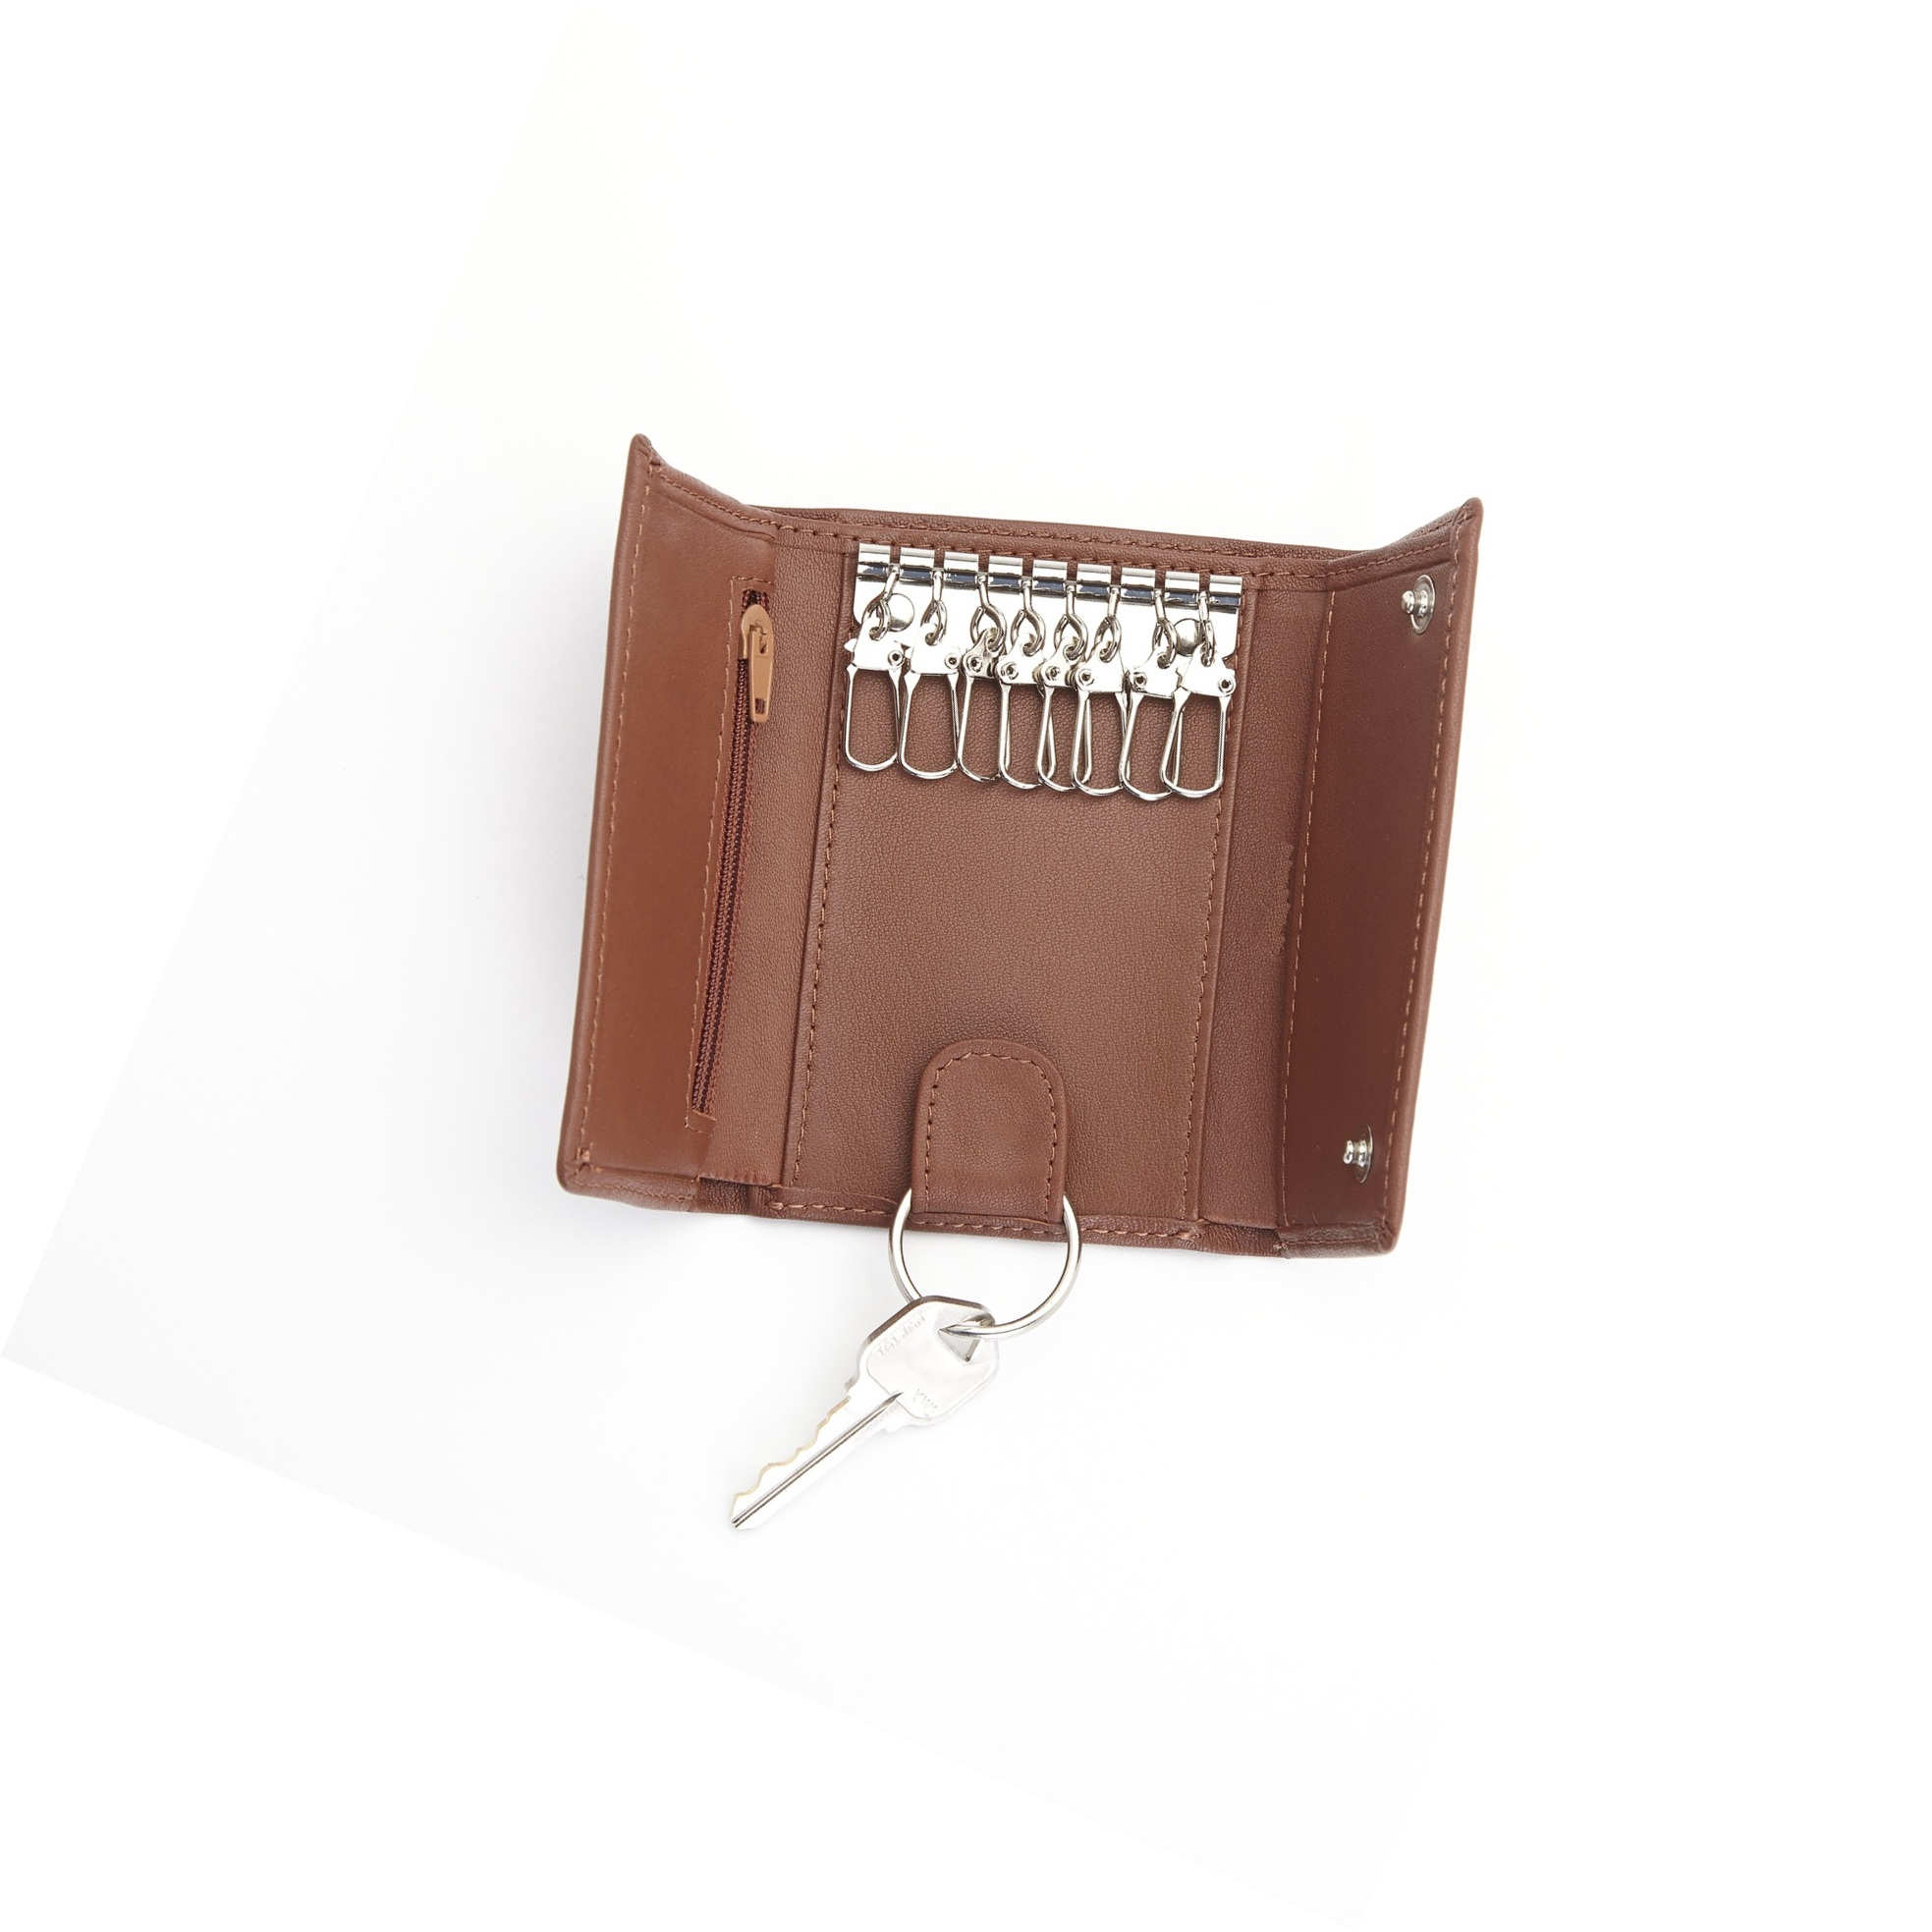 Large Leather Key Case Key Wallet With 1 Zip Pocket